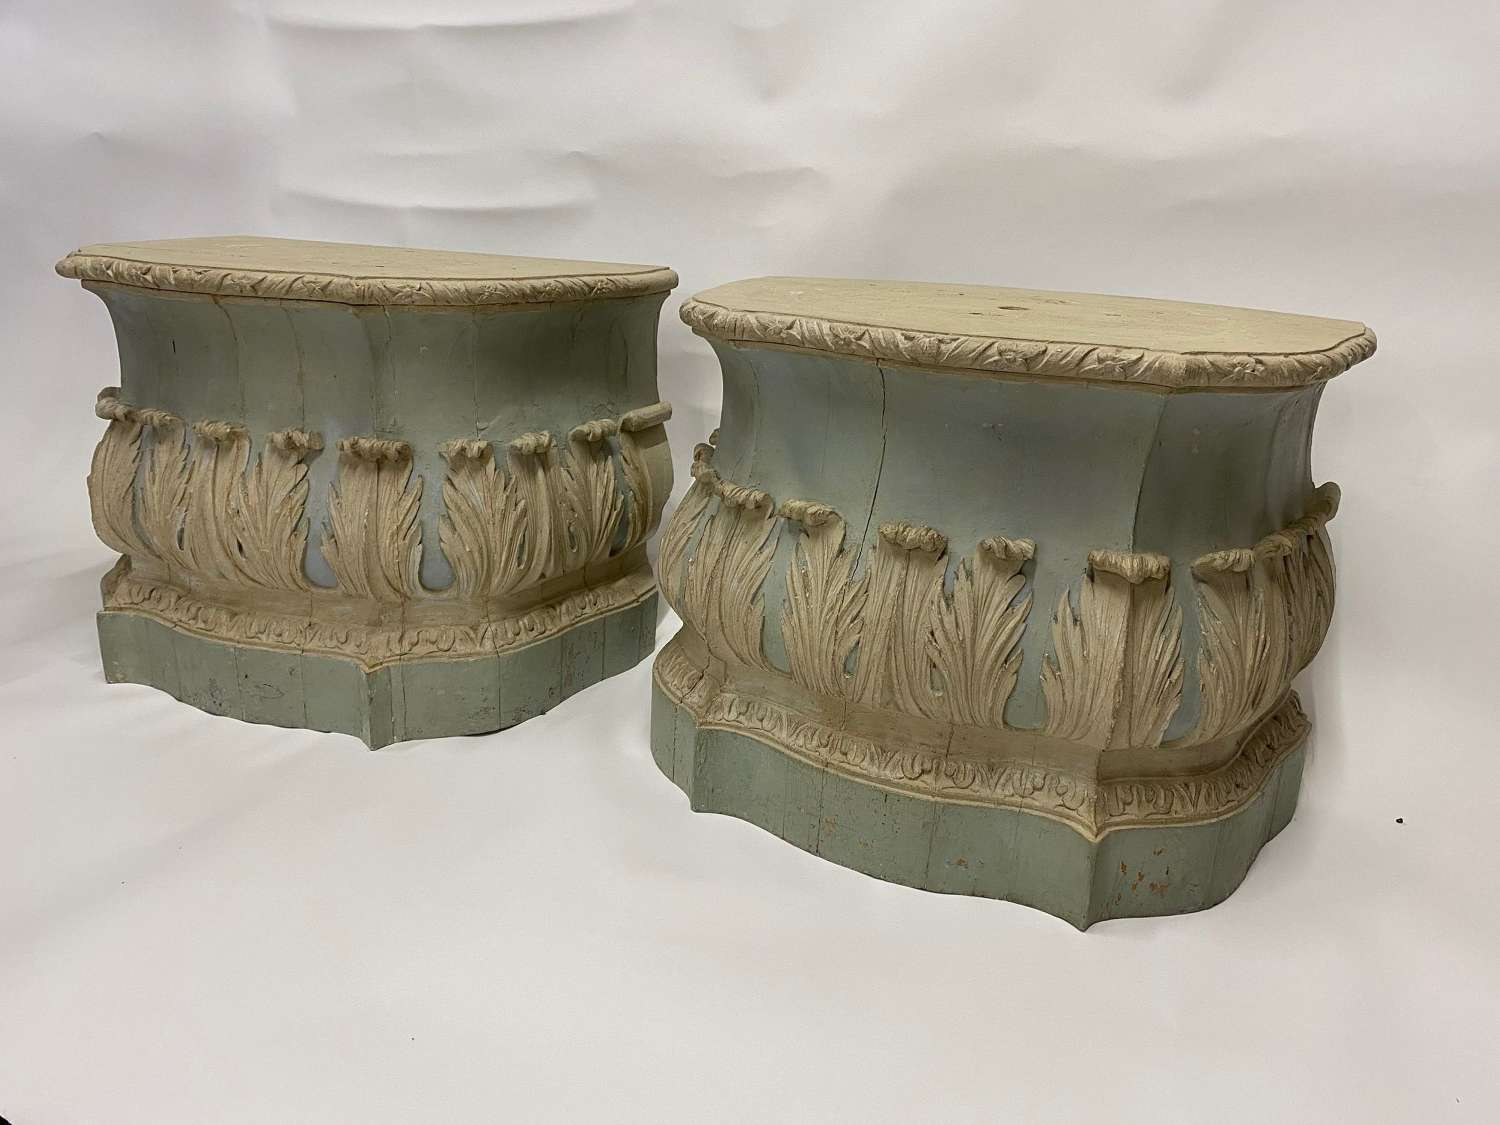 A Pair of George 11 carved painted Pedestals by William Hallett